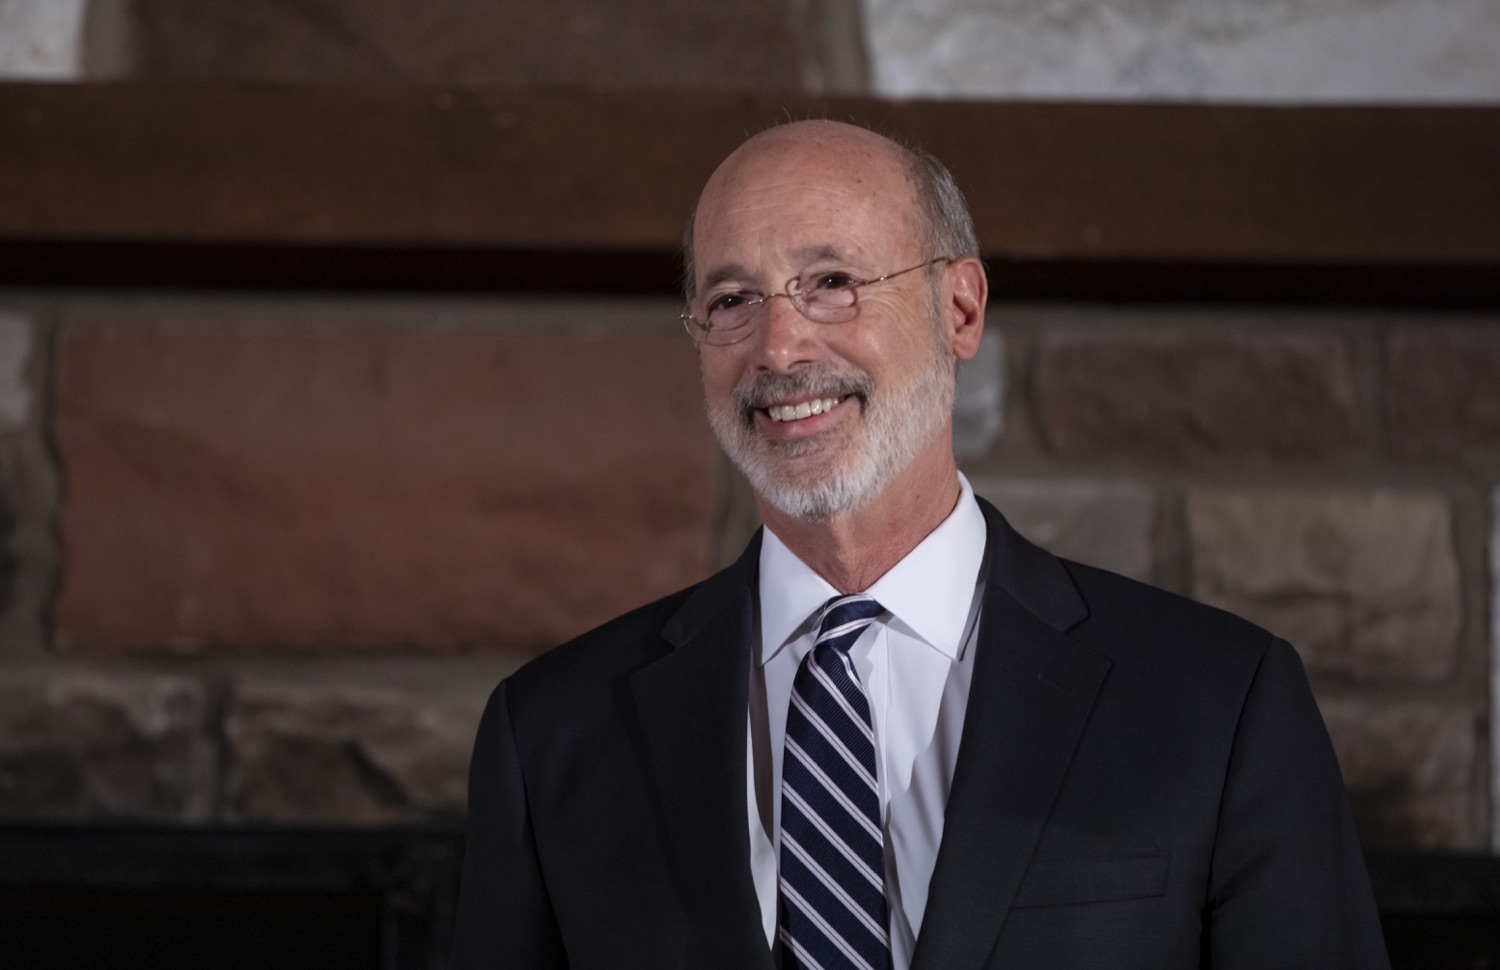 """<a href=""""http://filesource.abacast.com/commonwealthofpa/photo/17557_gov_dmva_rjw_019.jpg"""" target=""""_blank"""">⇣Download Photo<br></a>Governor Tom Wolf helped to honor two members inducted today into the Pennsylvania Department of Military and Veterans Affairs prestigious Hall of Fame, recognizing their exceptional service to the department that supports Pennsylvanias nearly 800,000 veterans and 18,000 members of the National Guard.  Chief Warrant Officer 5 (ret.) John K. Schreier of Selinsgrove, Snyder County; and John A. Brenner (posthumously) of Mt. Wolf, York County, are the 2019 inductees."""